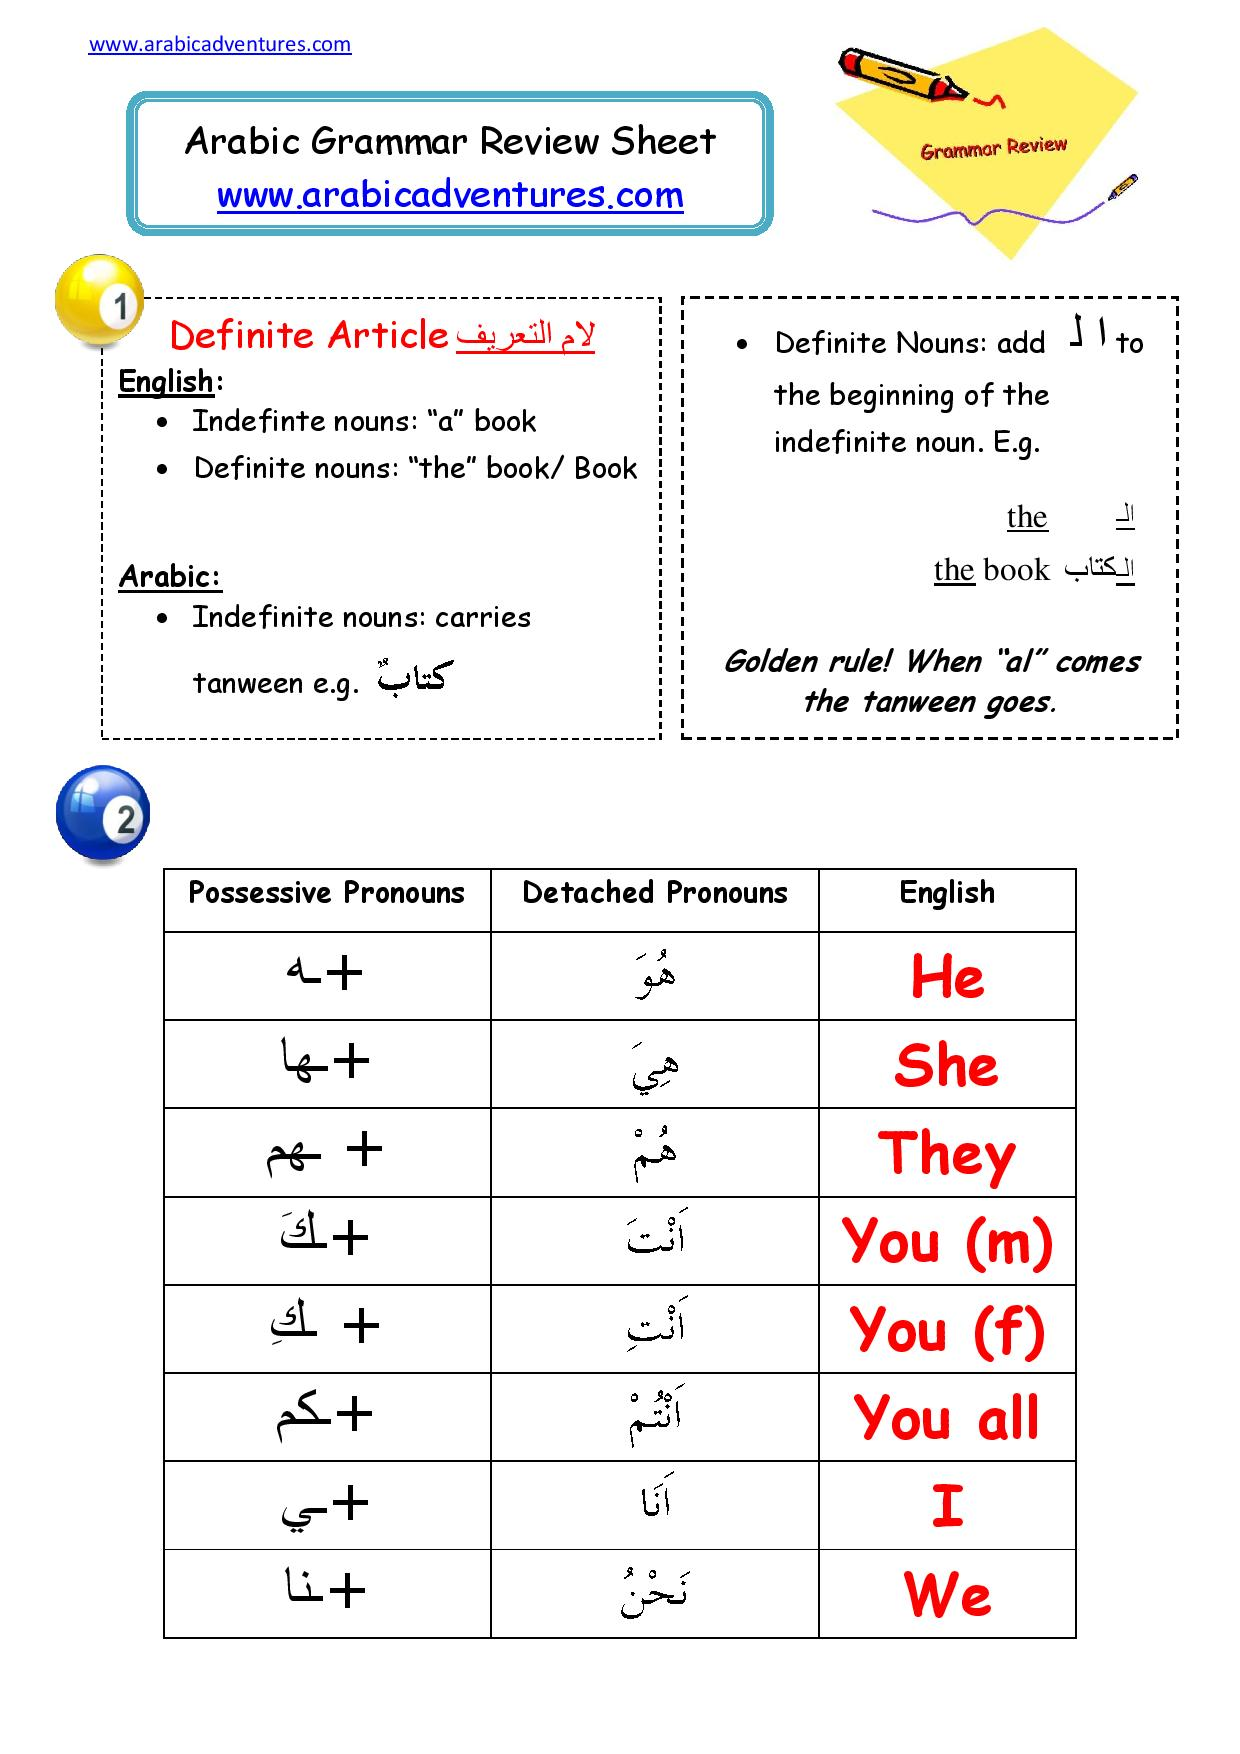 Attahed Pronouns Arabic Arabic Adventures